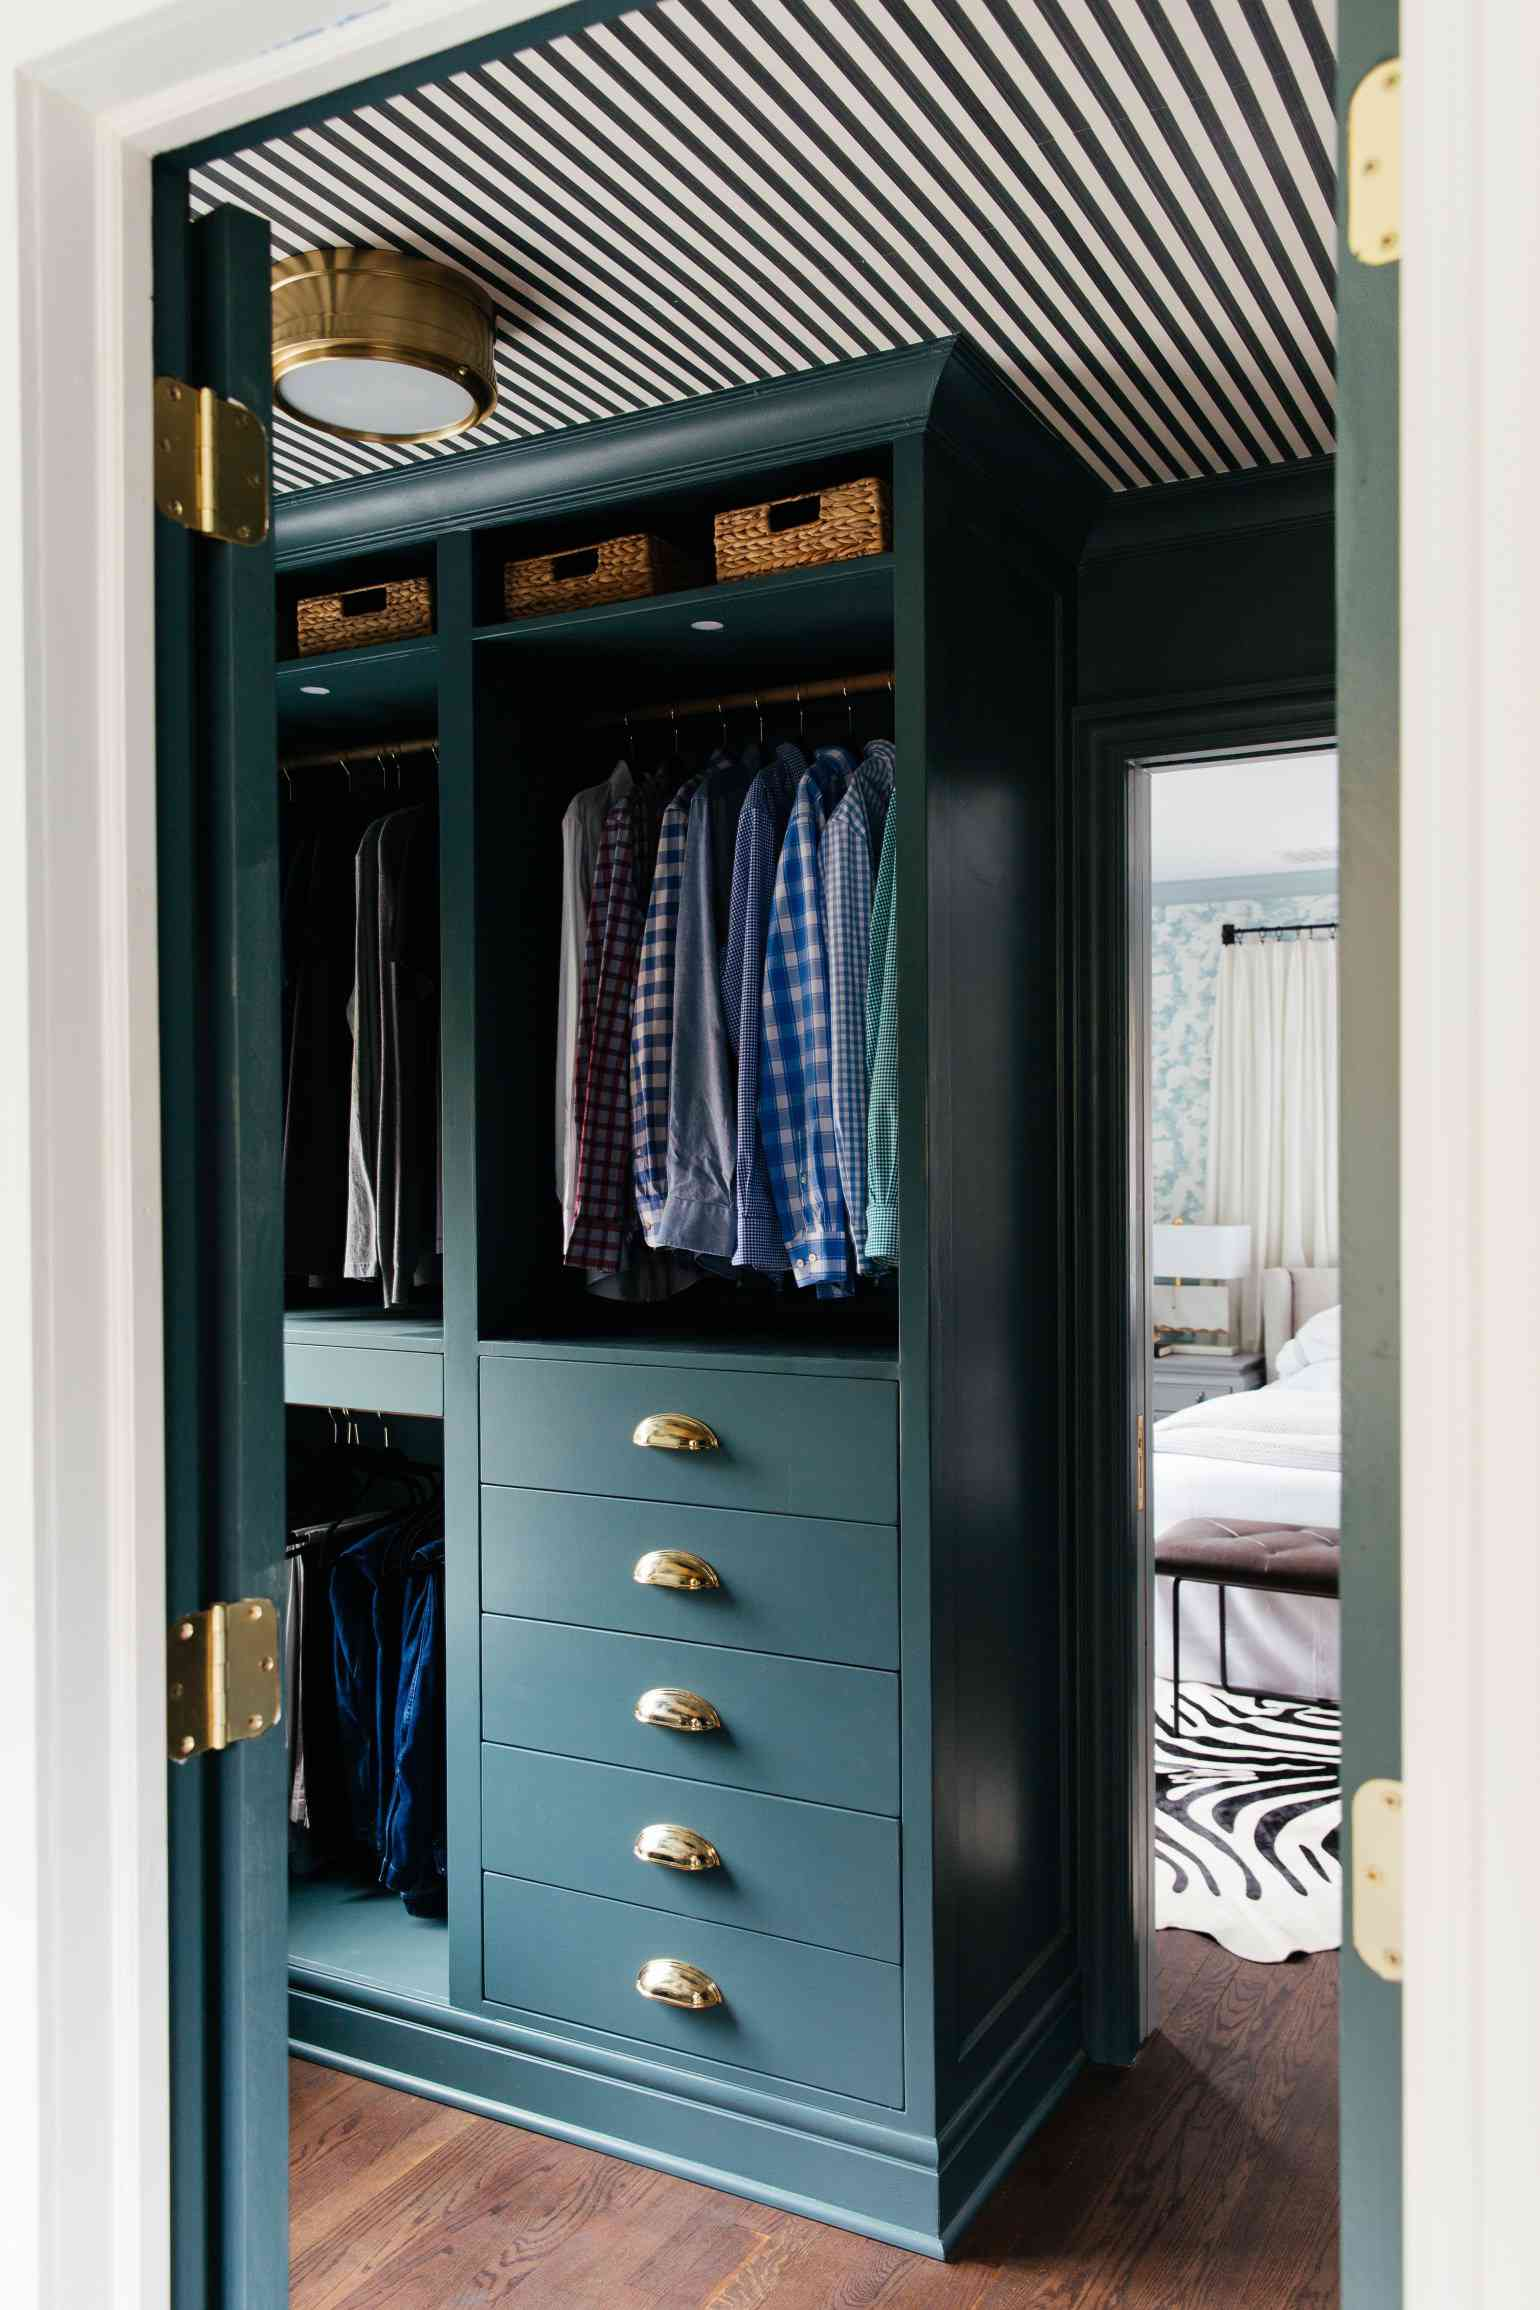 A customized IKEA closet that's been painted blue